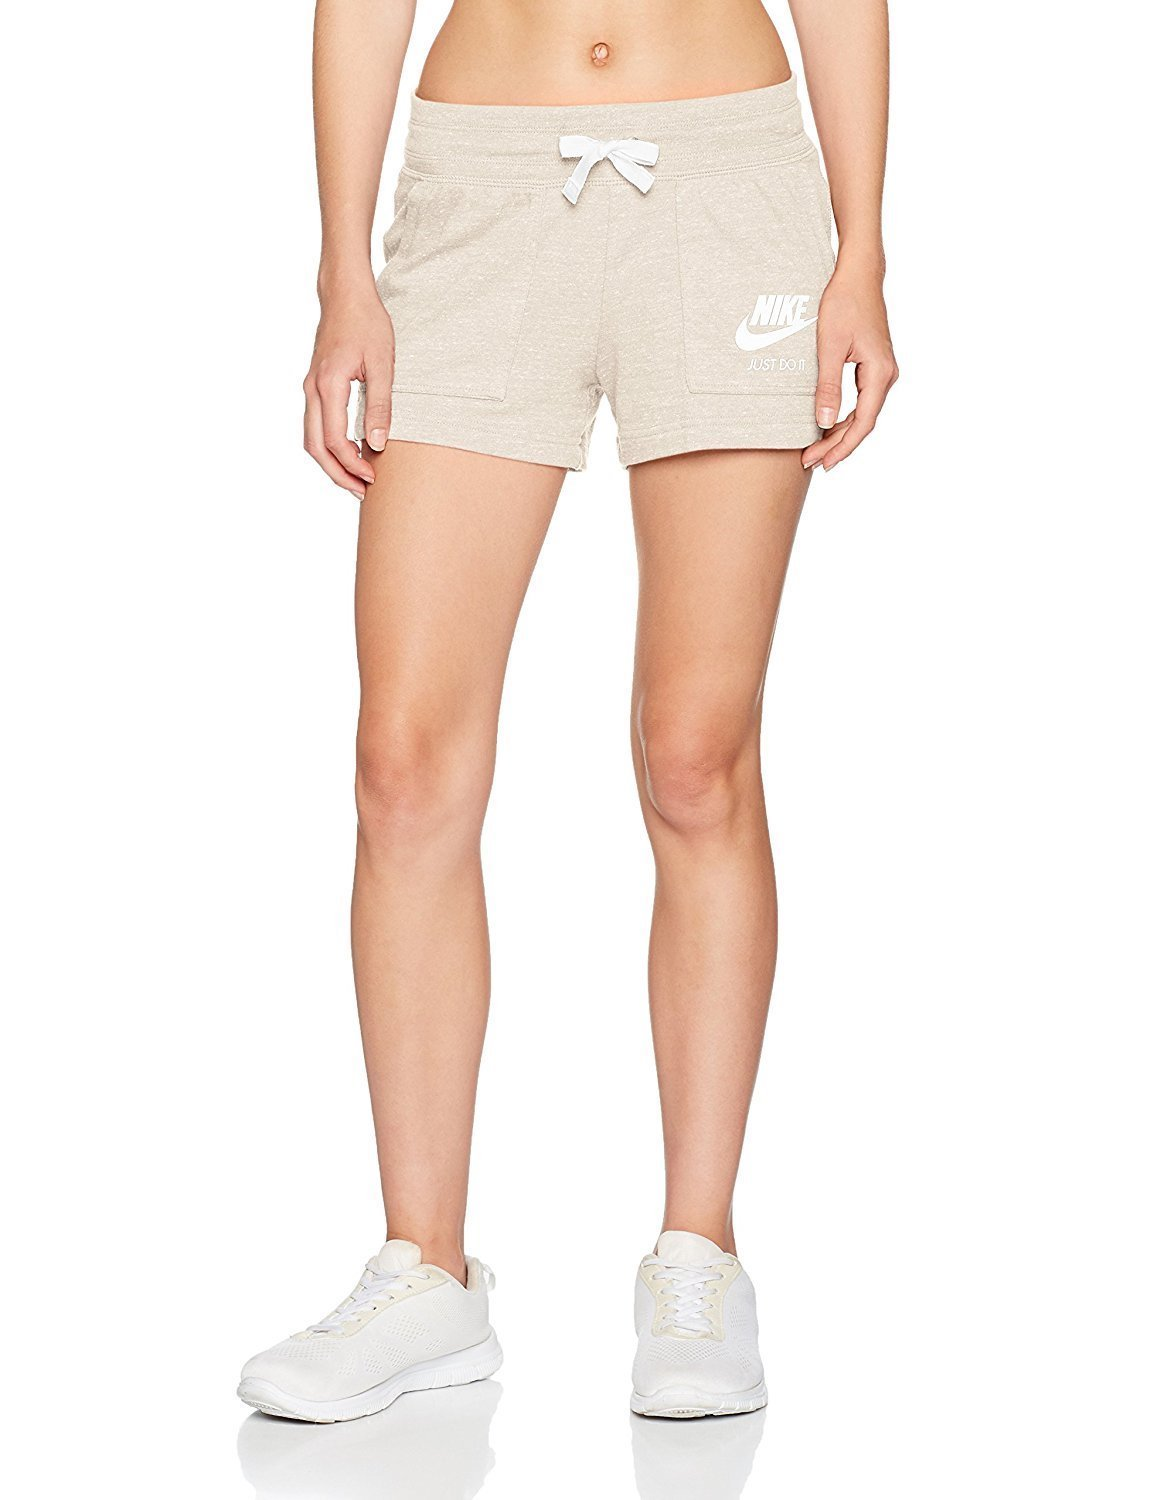 Nike Women's NSW Gym Vintage Short, Oatmeal/Sail, X-Small